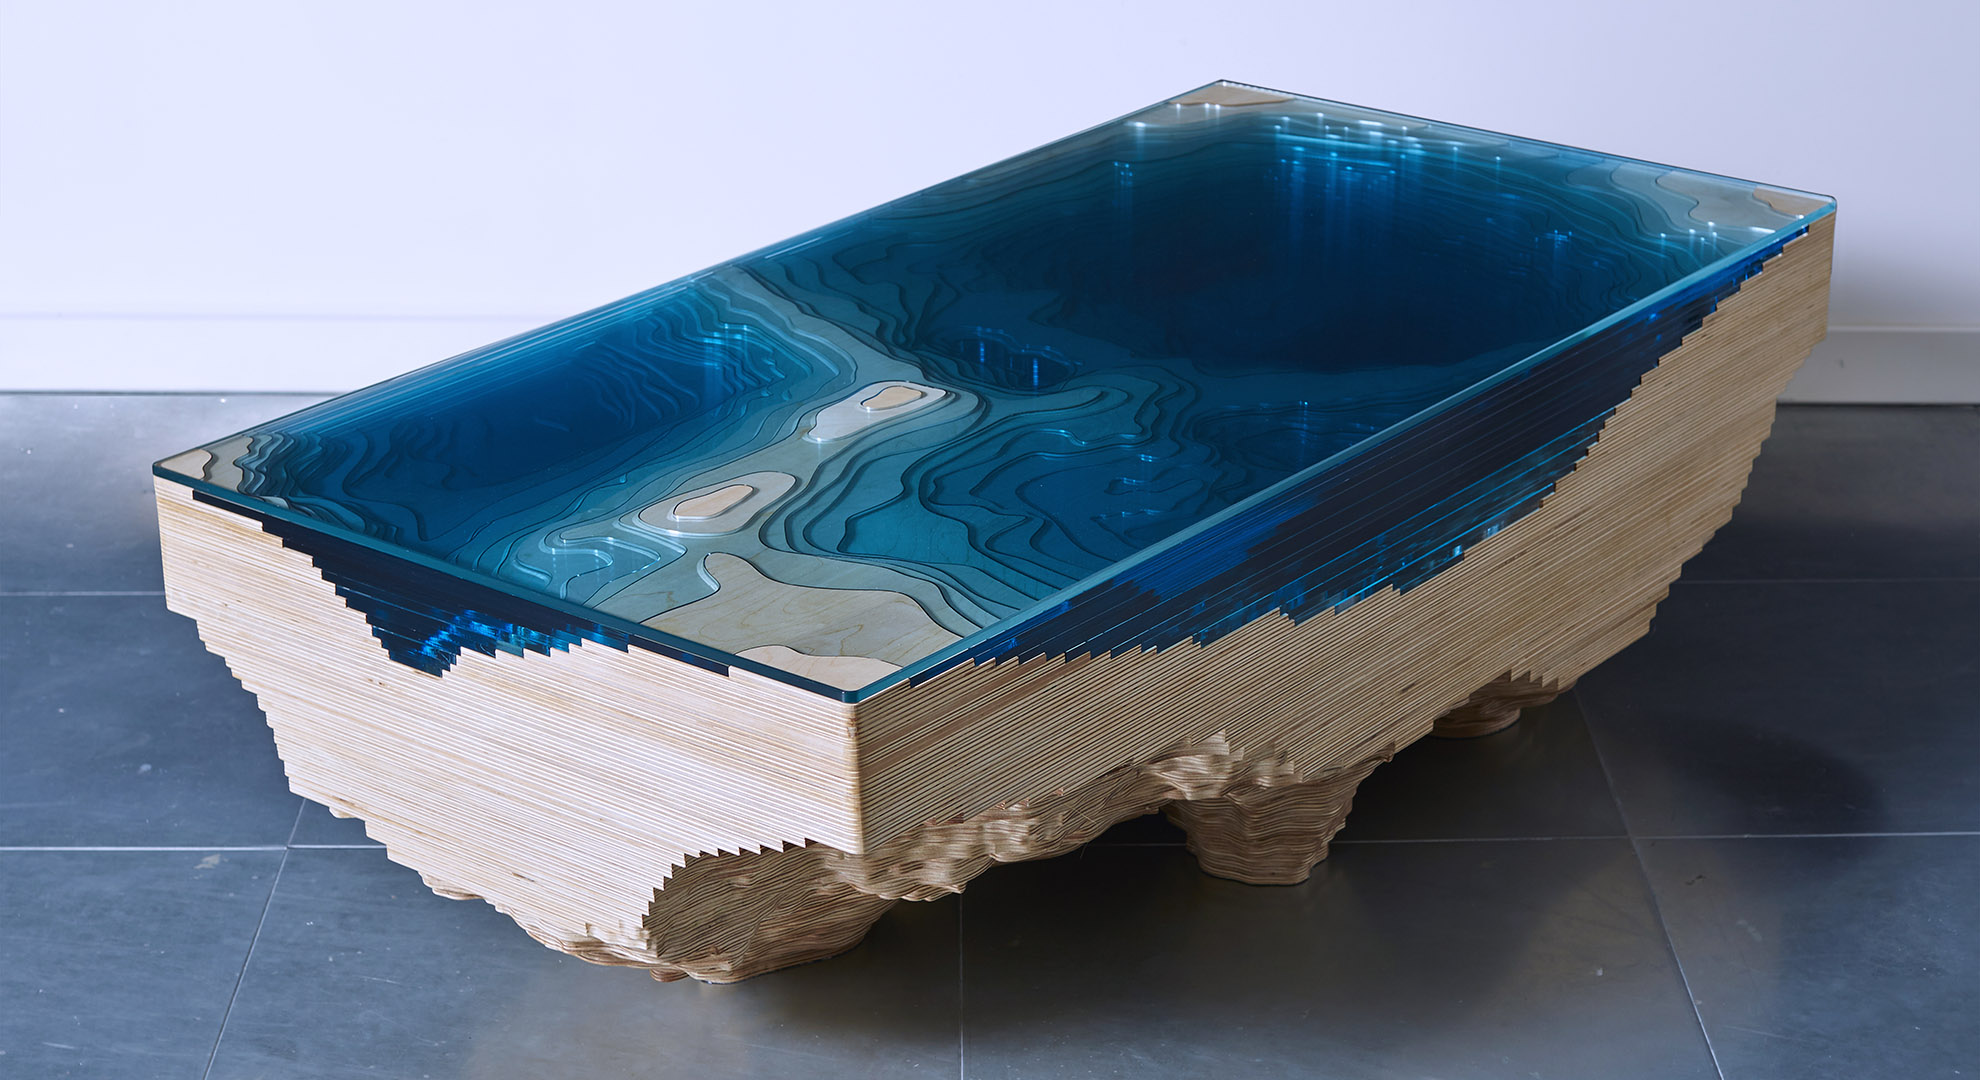 Abyss table by Duffy. Ocean artwork